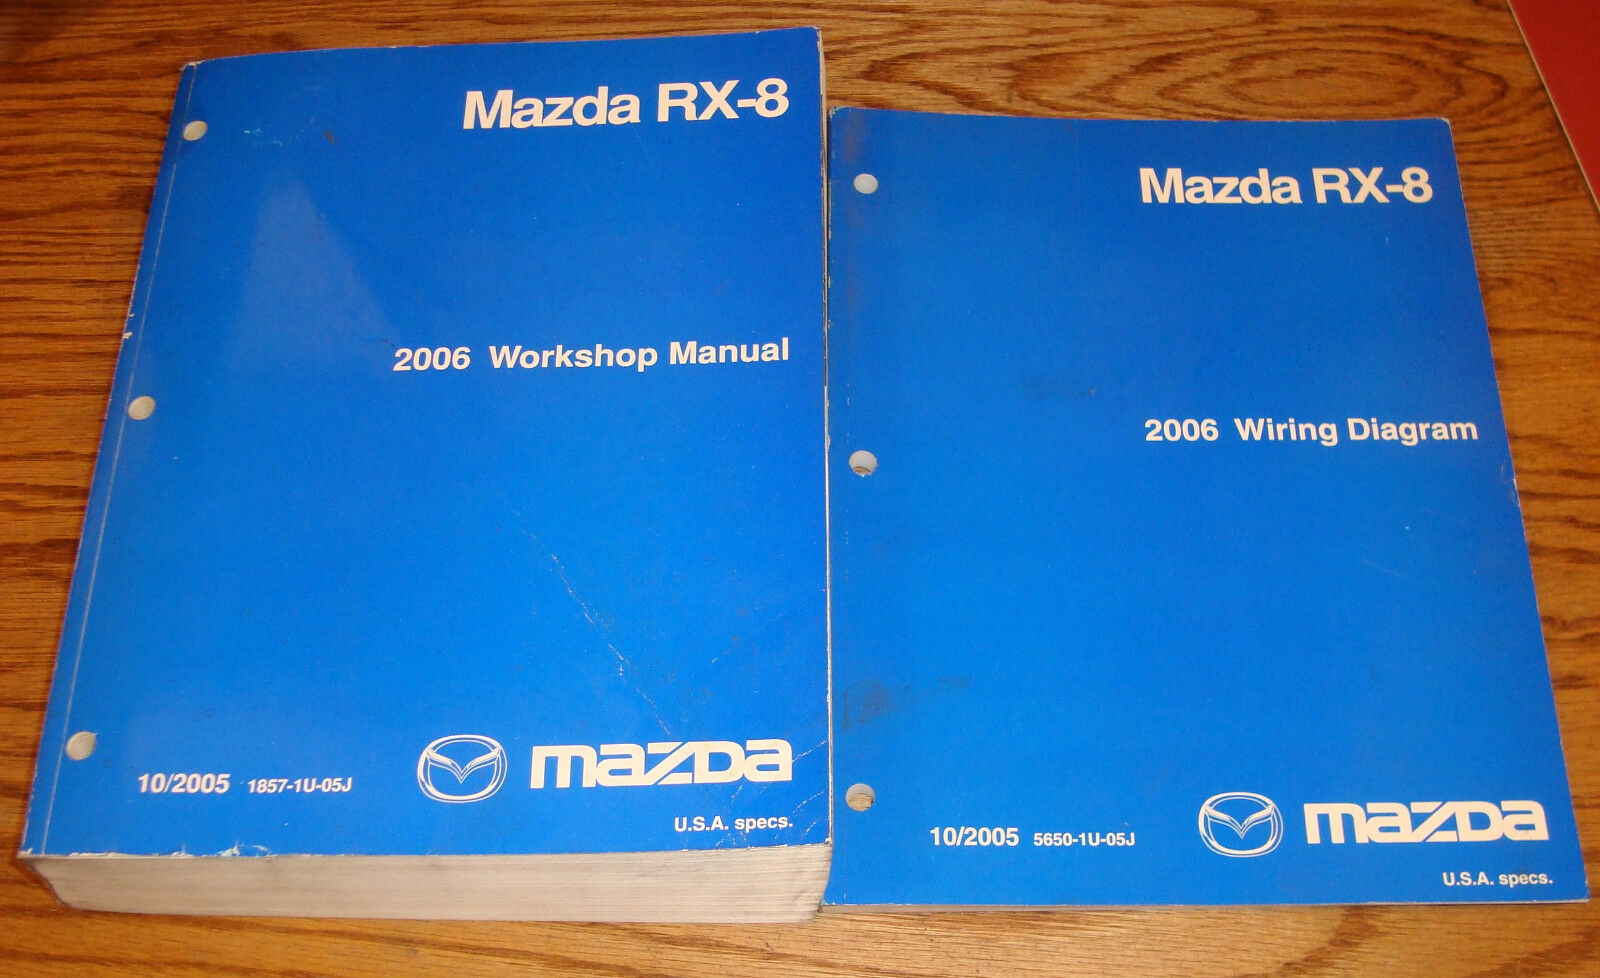 Original 2006 mazda rx 8 shop service manual wiring diagram set 06 original 2006 mazda rx 8 shop service manual wiring diagram set 06 1 of 1only 1 available asfbconference2016 Gallery